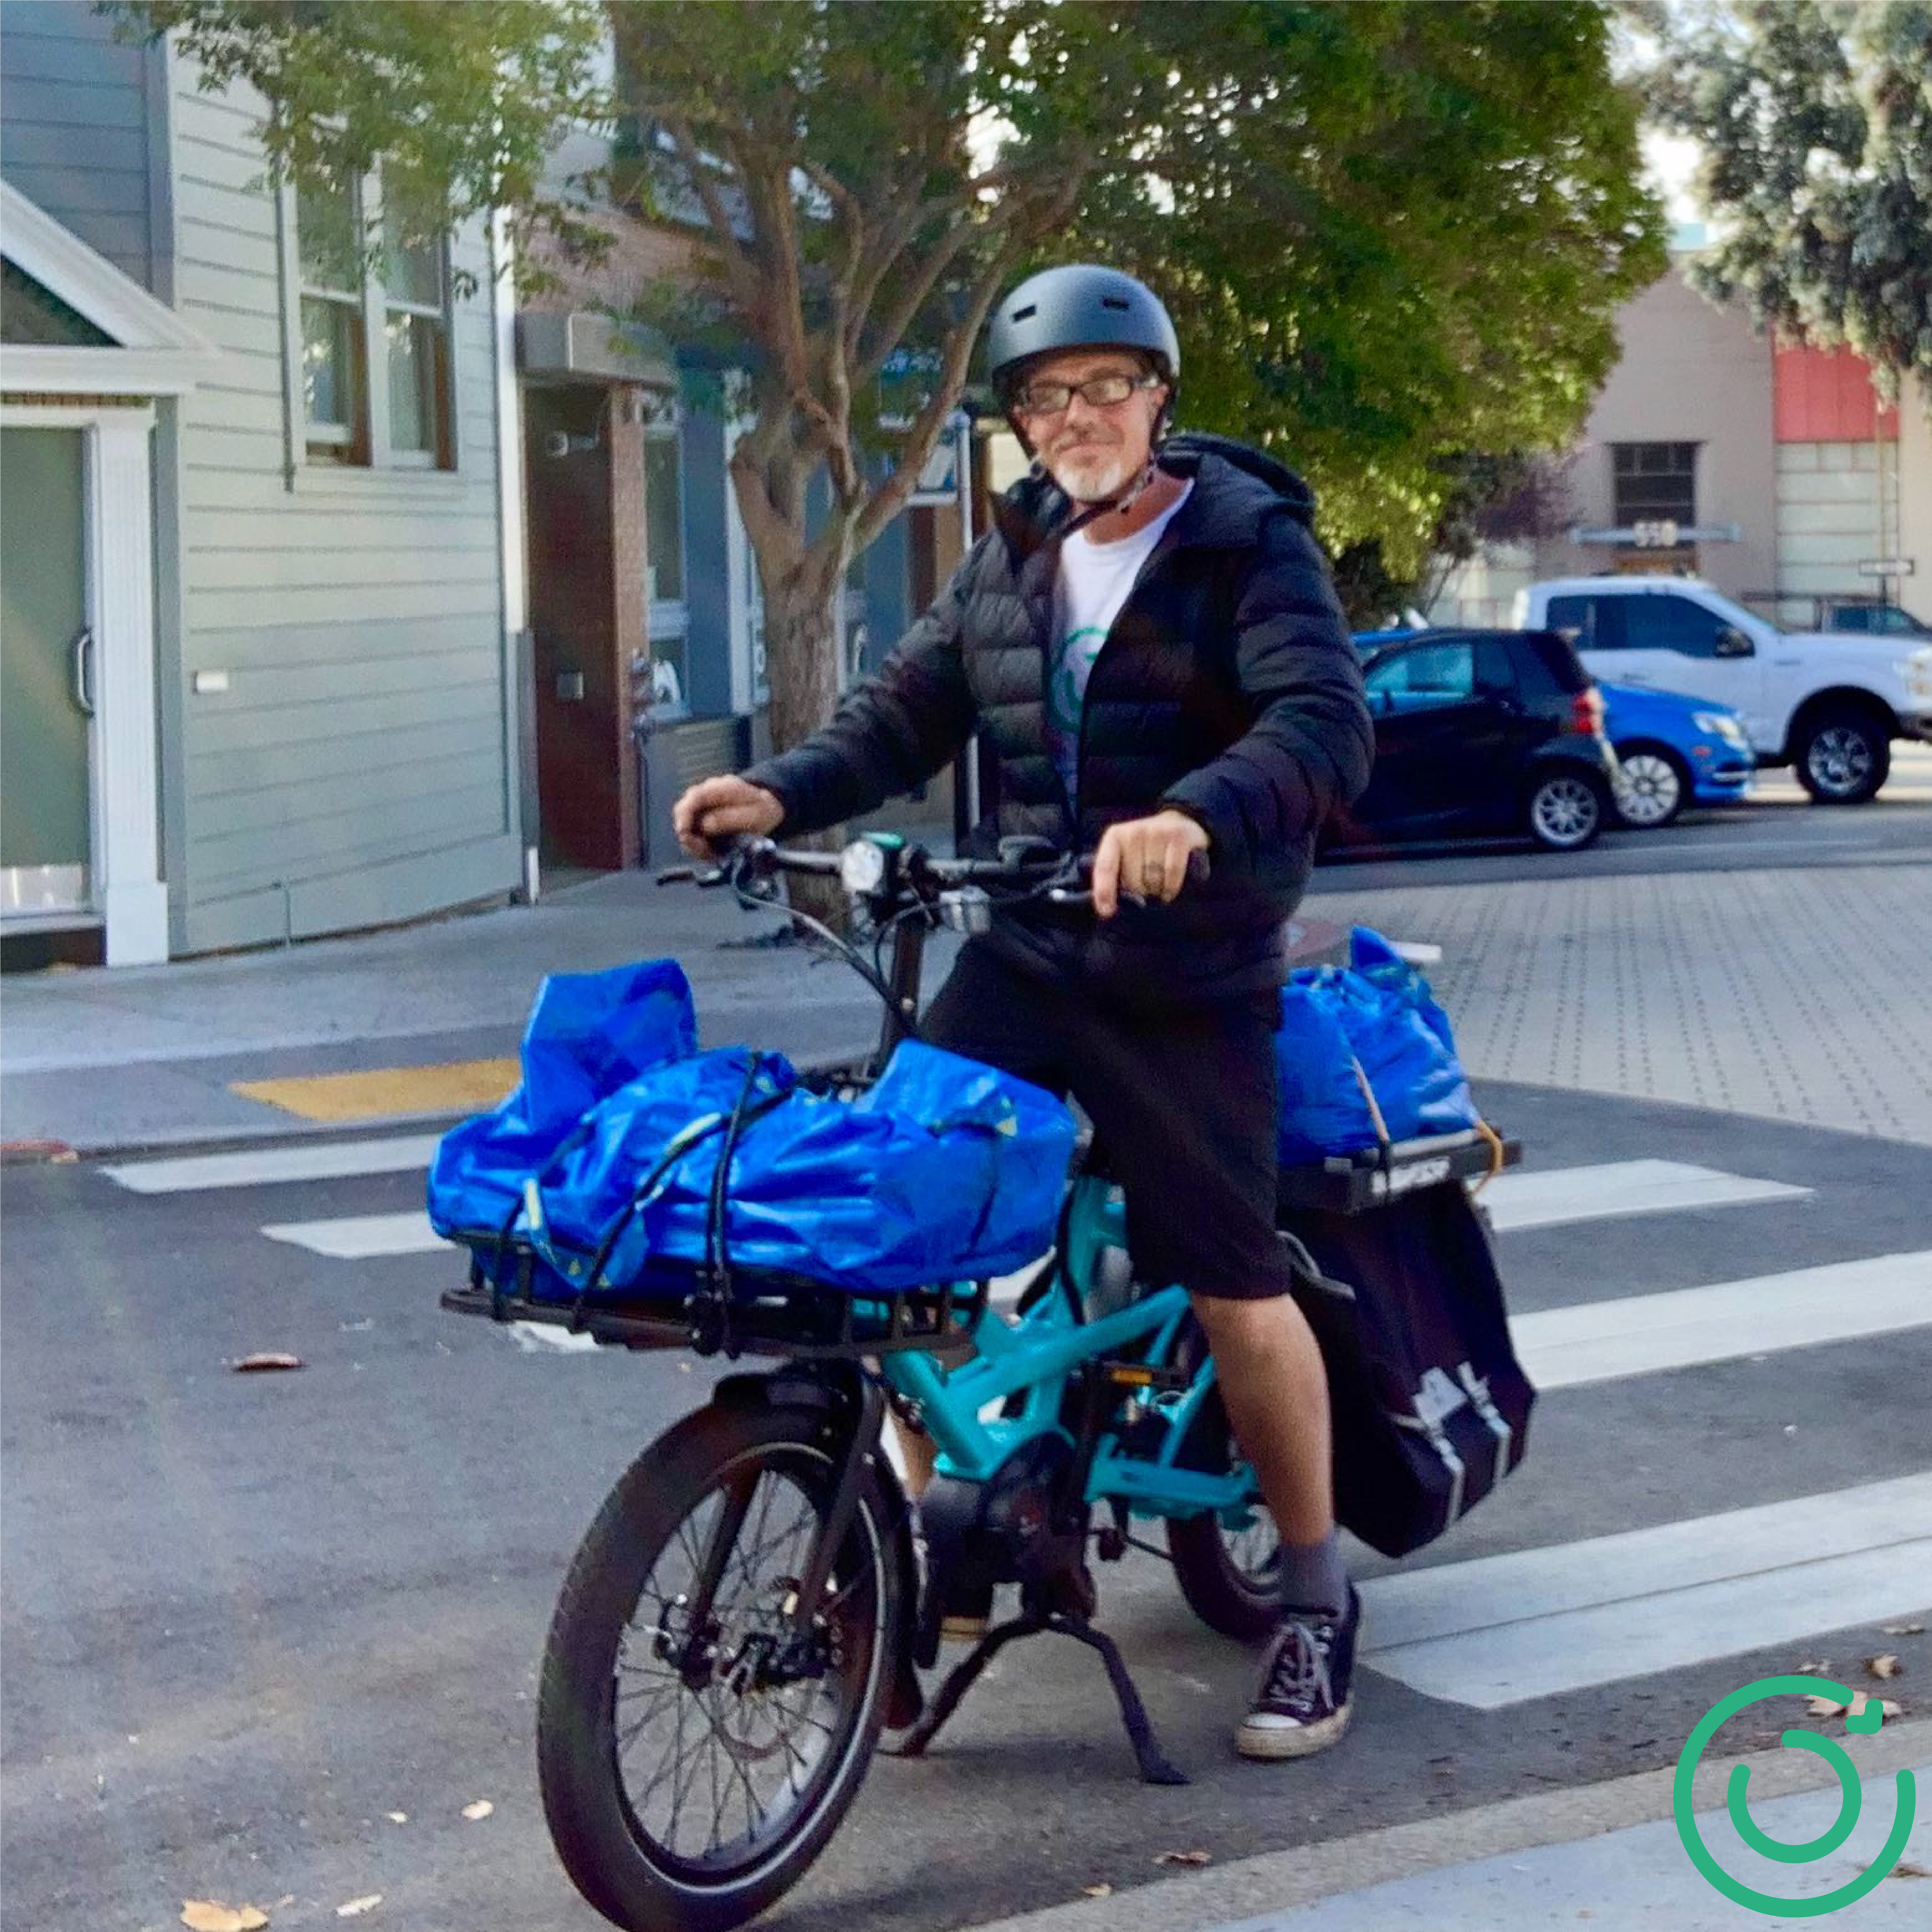 A food rescuer using a bicycle to deliver food